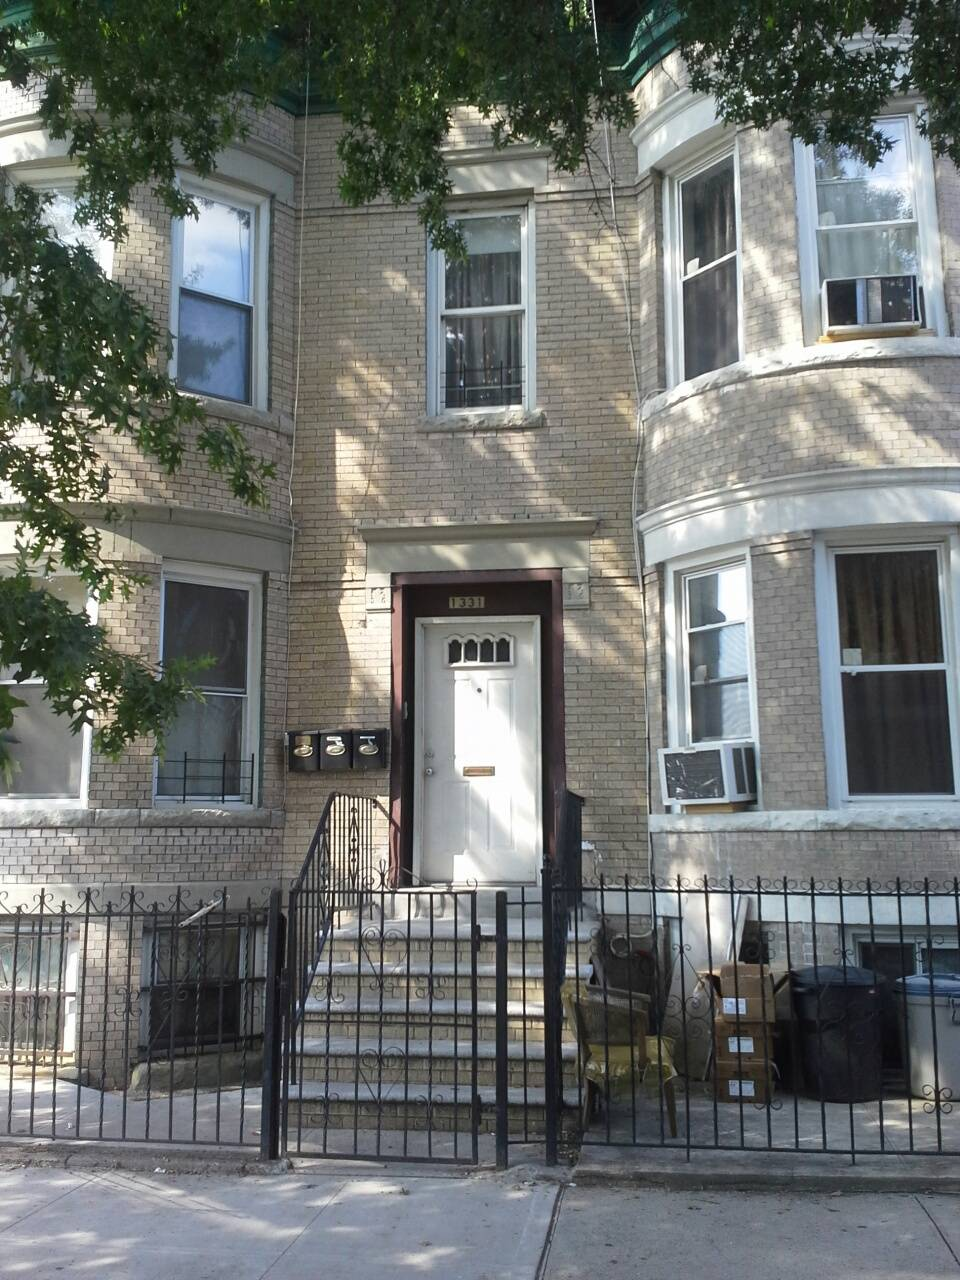 attached brick homes in crown heights brookln, thinking of selling your home in crown heights brooklyn